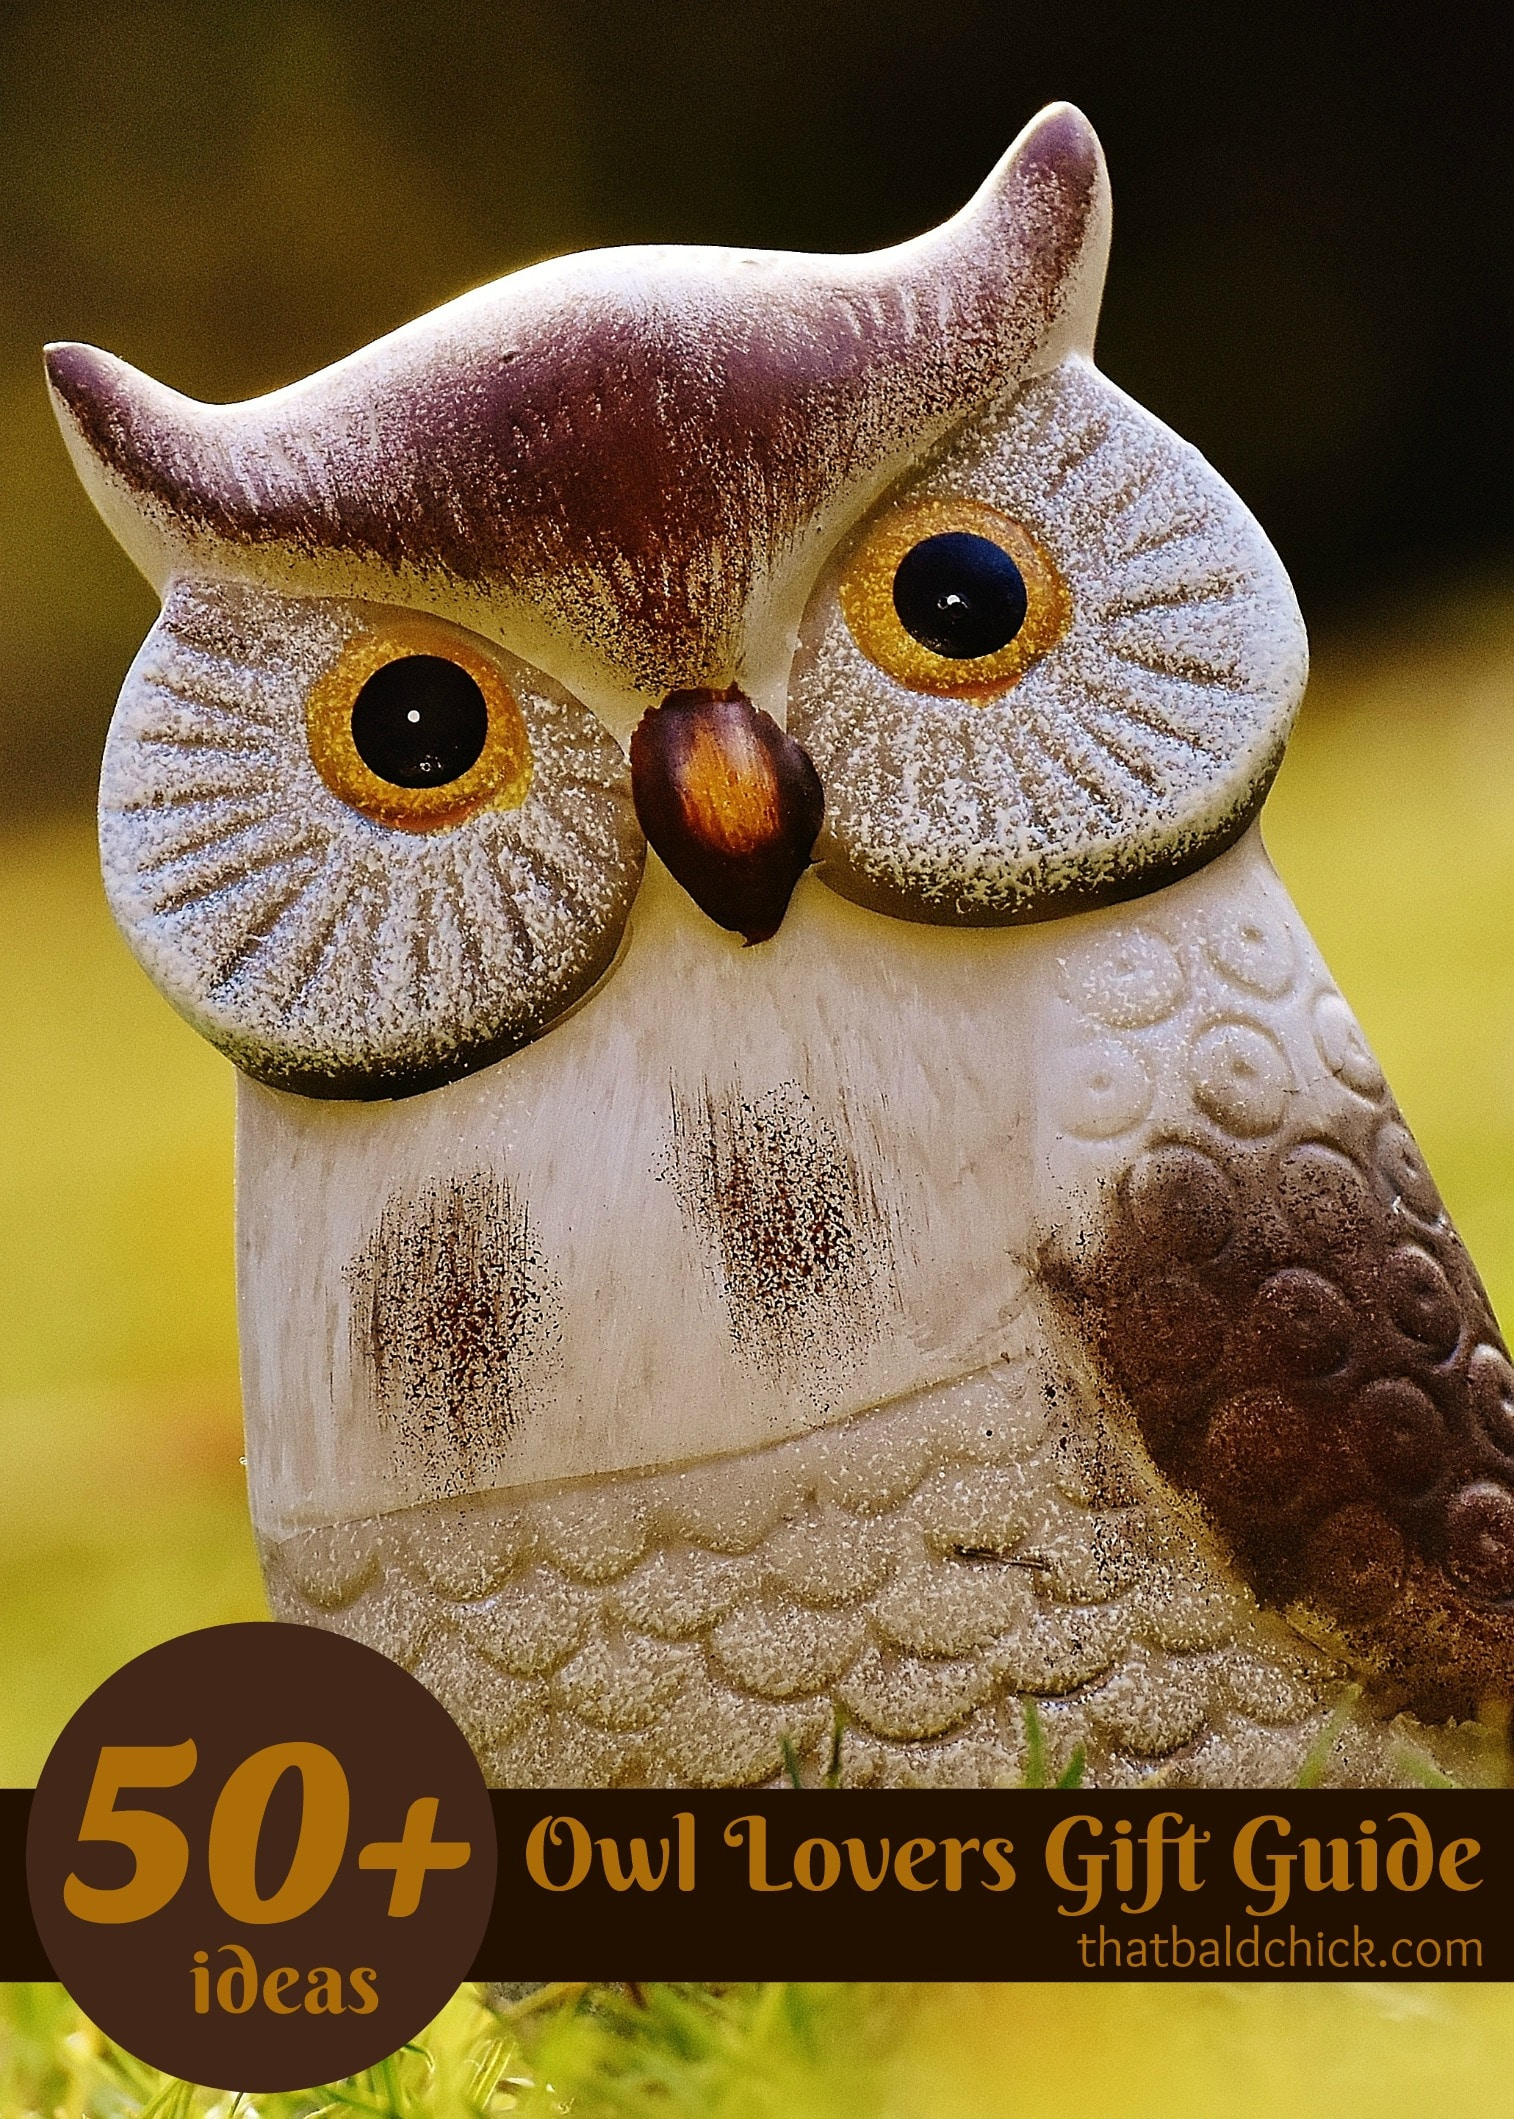 Owl Lovers Gift Guide - with over 50 gift ideas to show them you give a hoot - at thatbaldchick.com